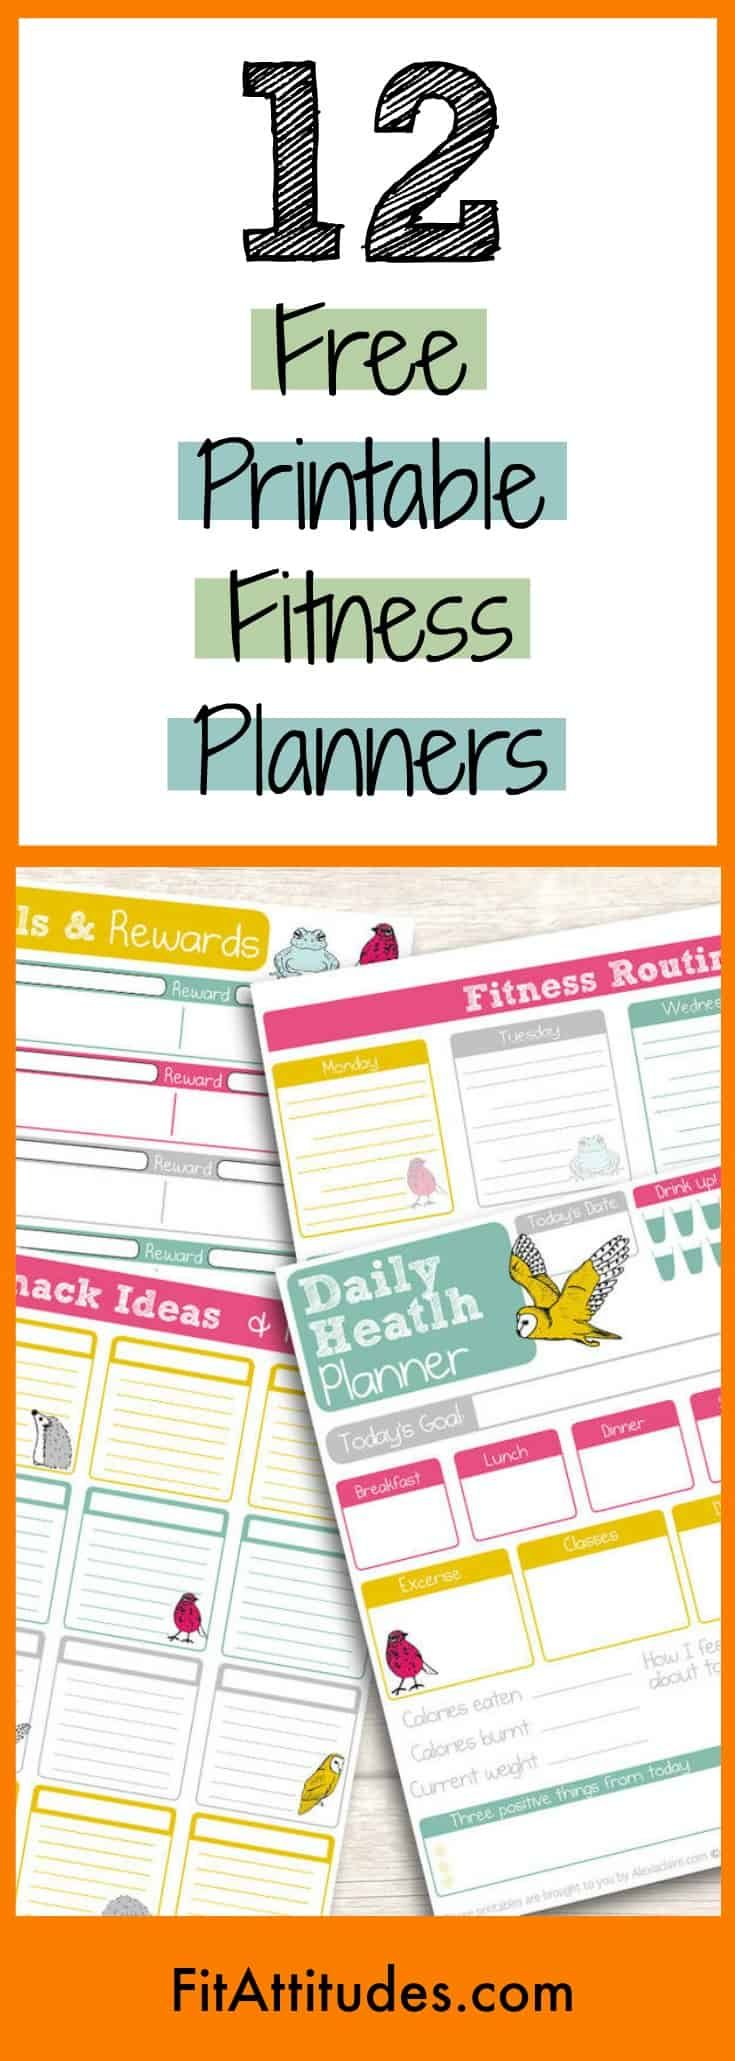 16 fitness Journal printable ideas